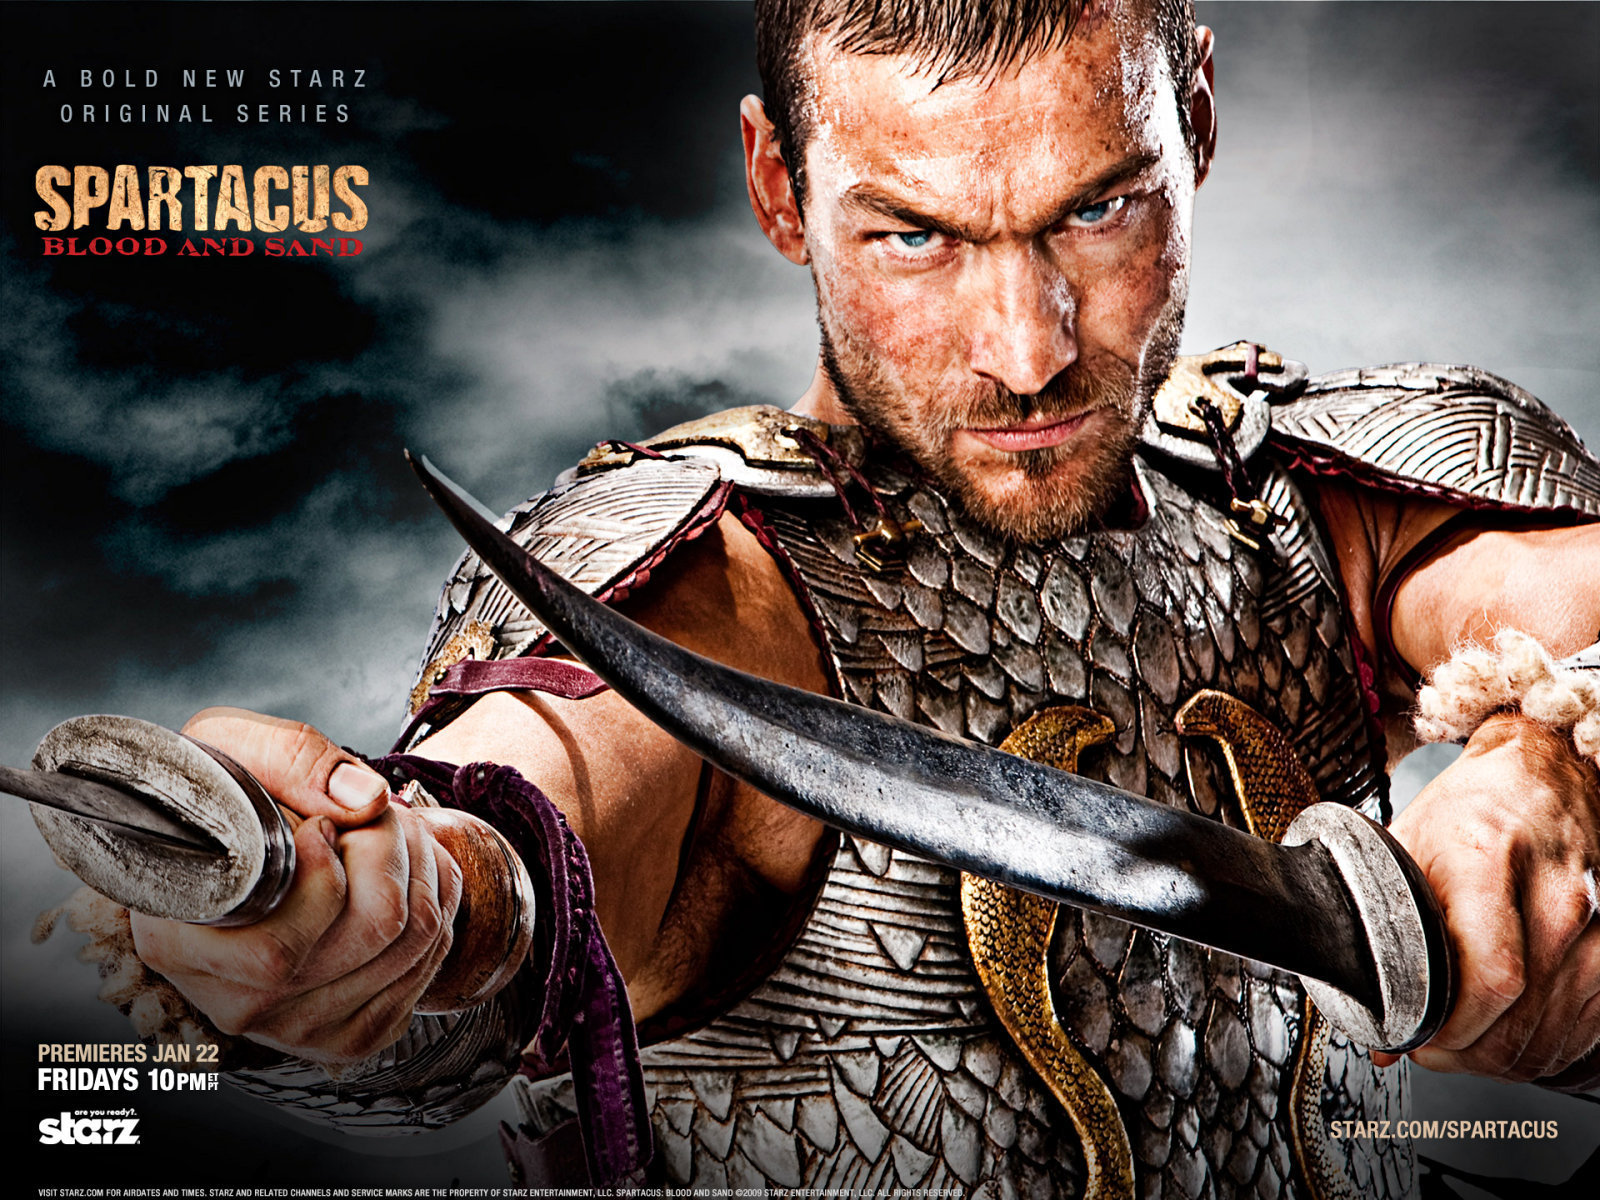 http://images2.fanpop.com/image/photos/10500000/SPARTACUS-spartacus-blood-and-sand-10535709-1600-1200.jpg